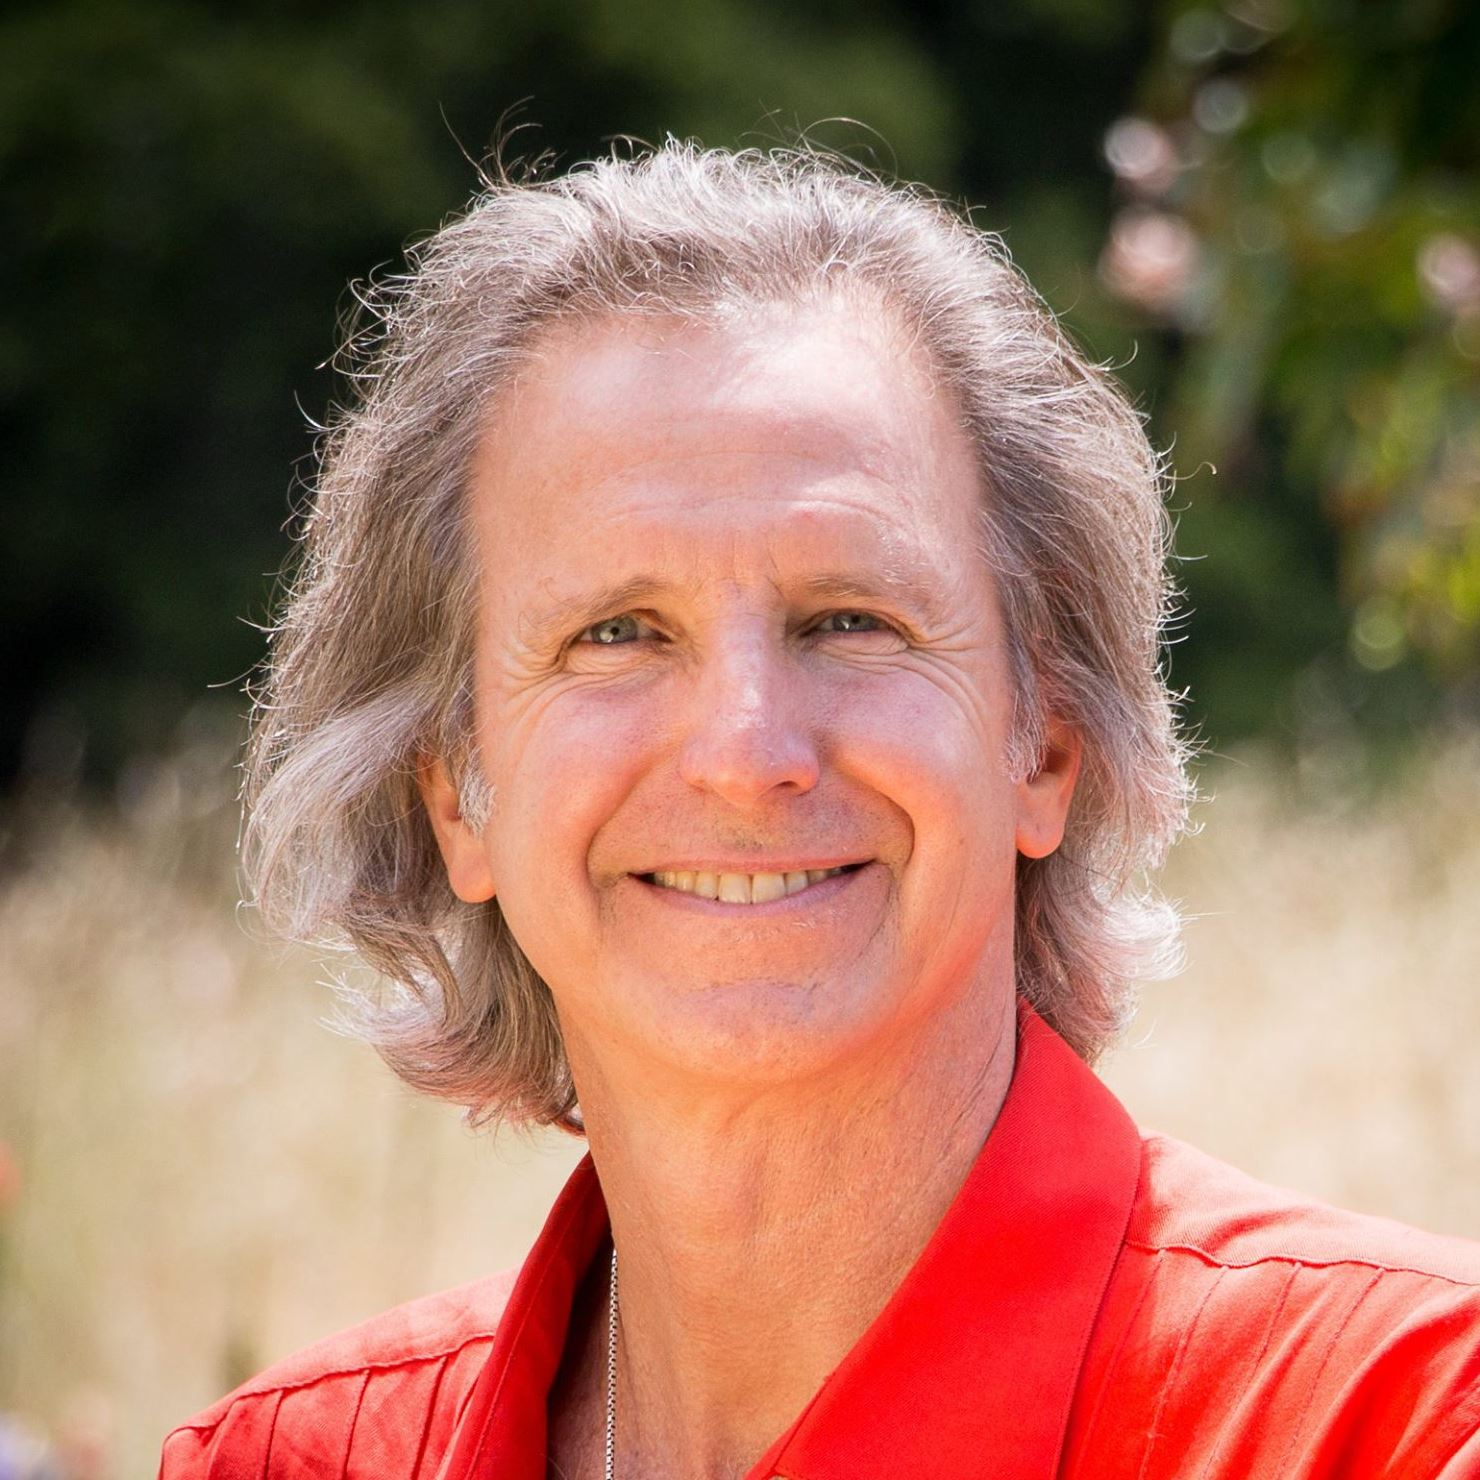 Michael Gelbart, LCSW   - San Francisco East Bay Couples Counselor & Sex Therapist with a Specialty in Men's Issues